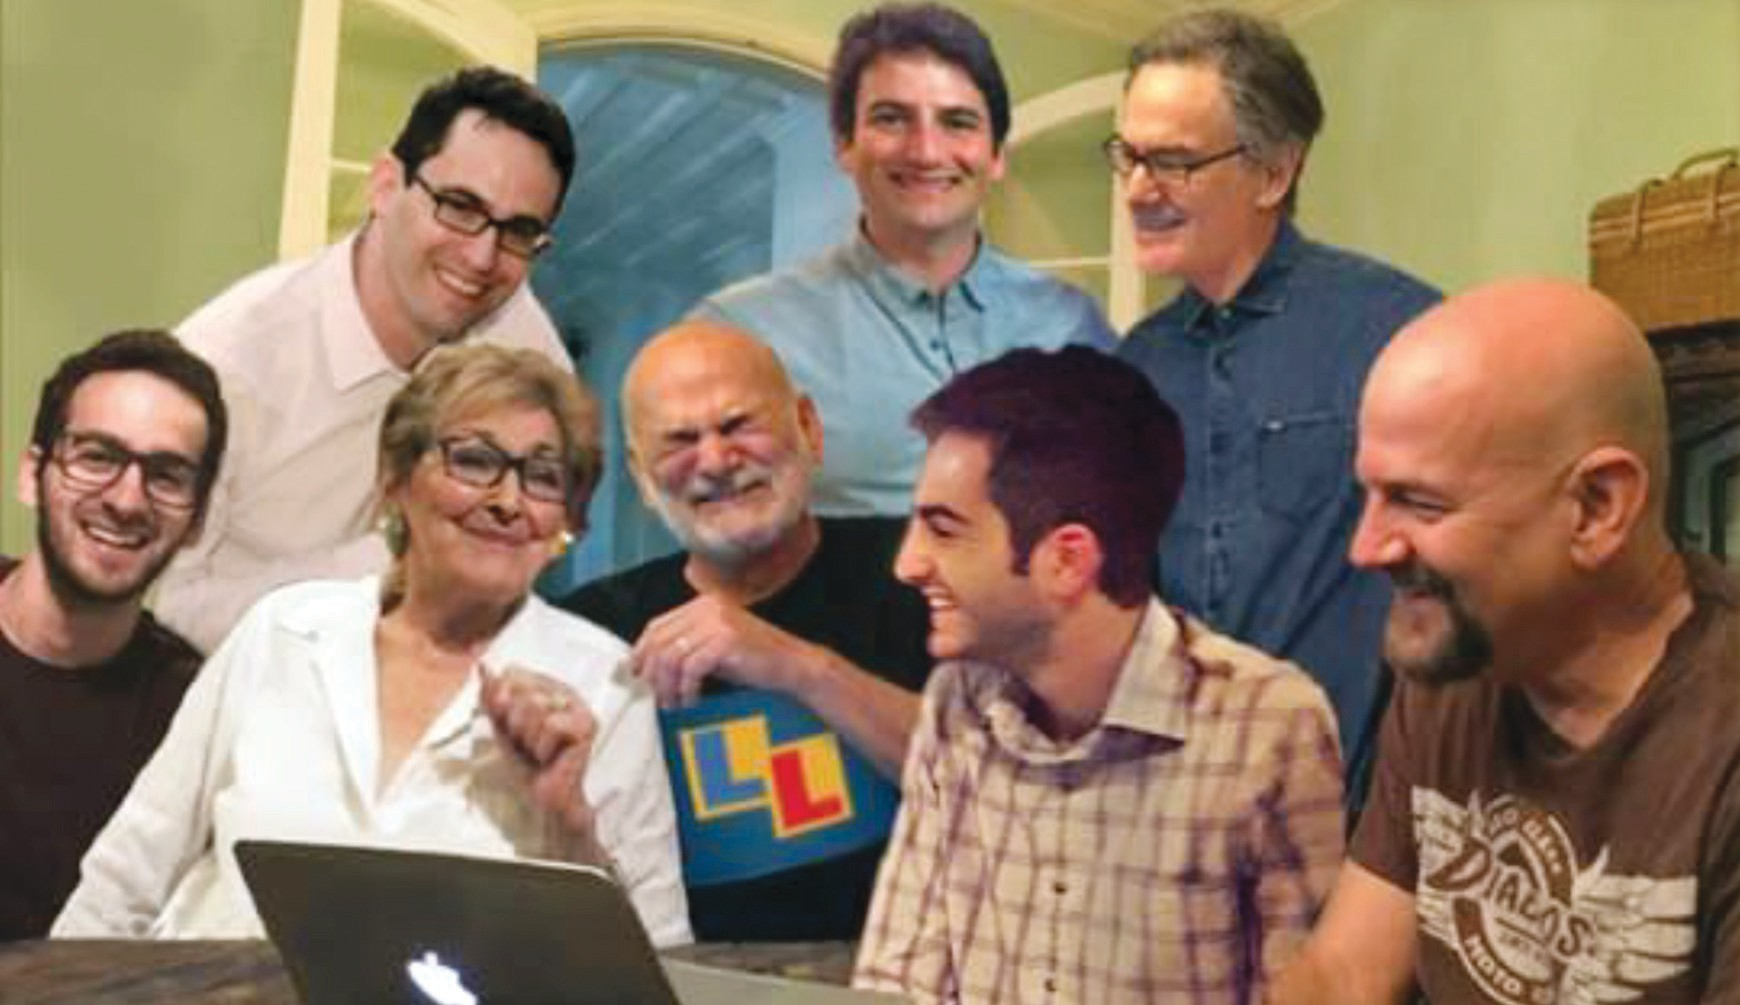 GAME TIME—The Neigher family enjoys a light moment together playing their online game titled Letterloose. Front row, from left are: Benjamin, Ethel, Steve, Alex and Rick. Back row: Eric, Clay and Geoff. Courtesy photo